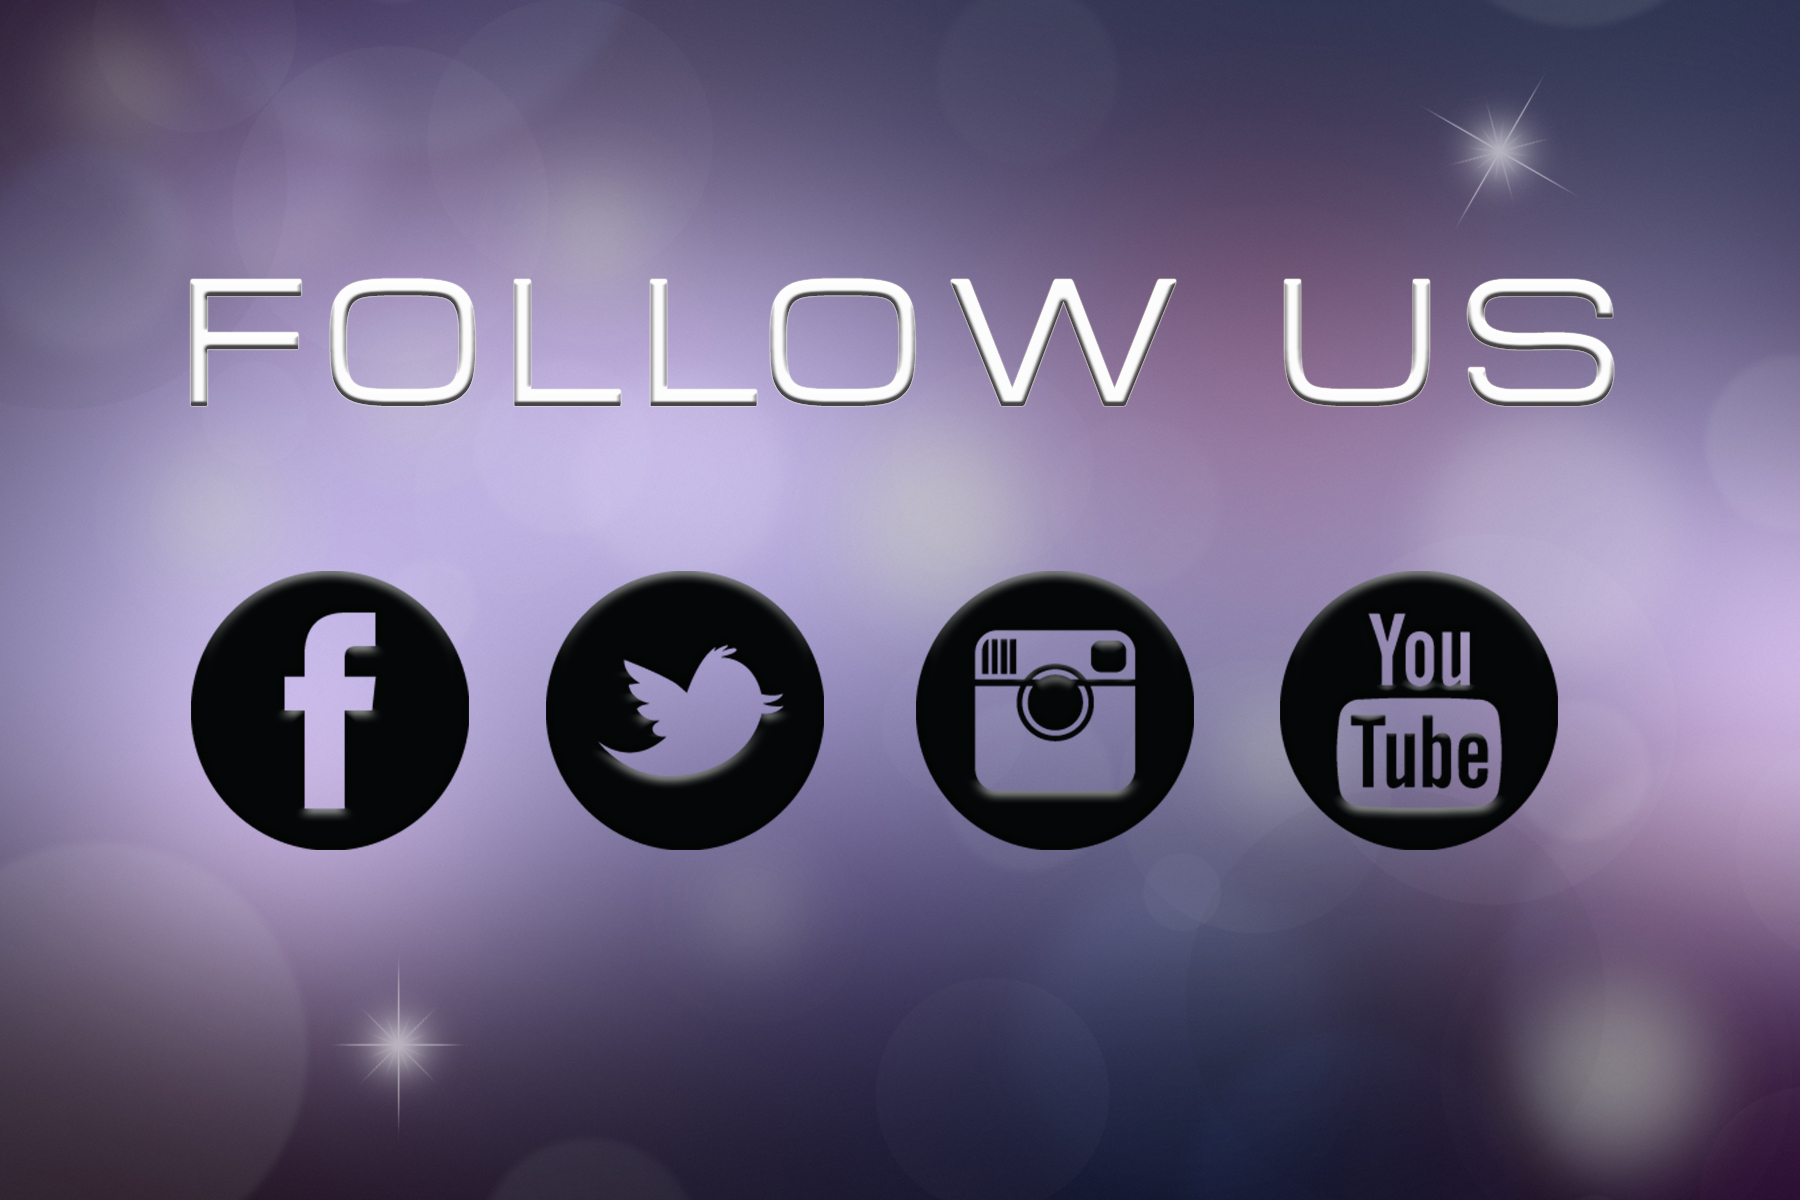 Follow us on Social Networks